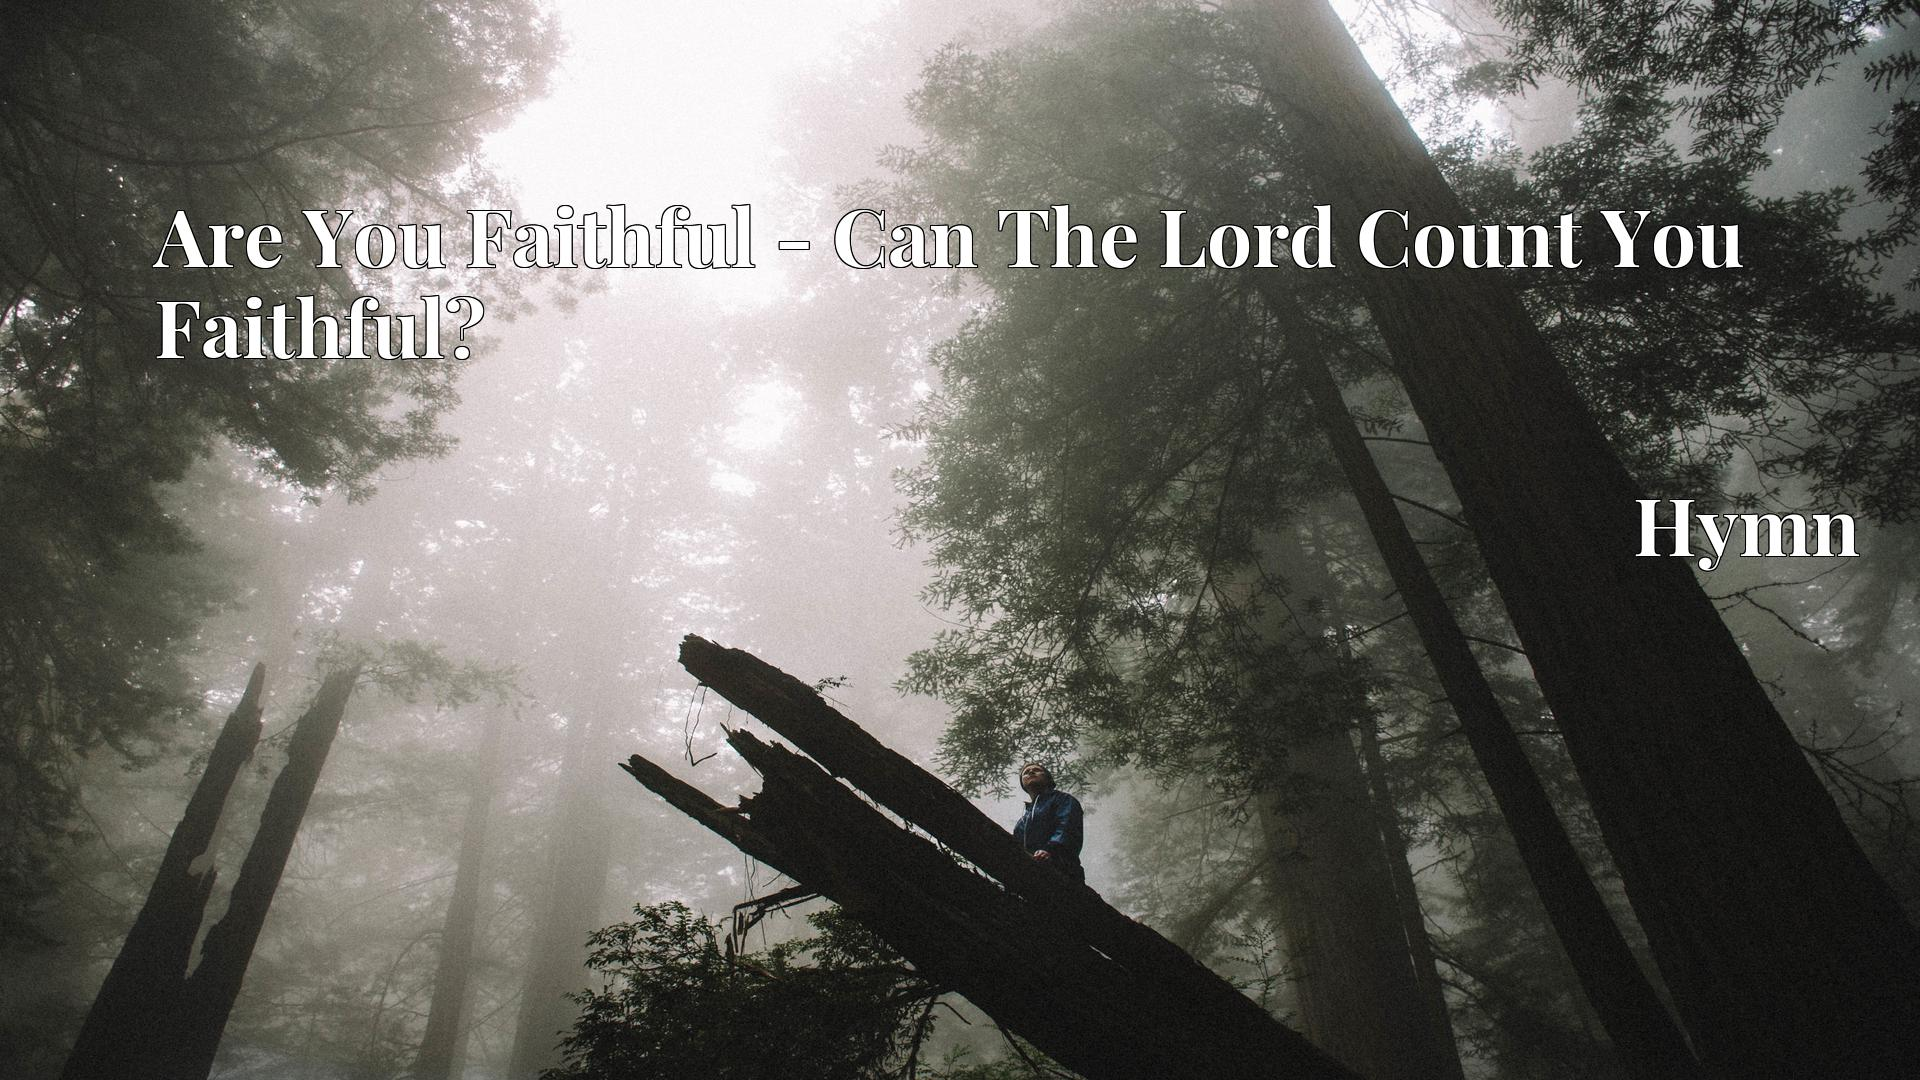 Are You Faithful - Can The Lord Count You Faithful? - Hymn